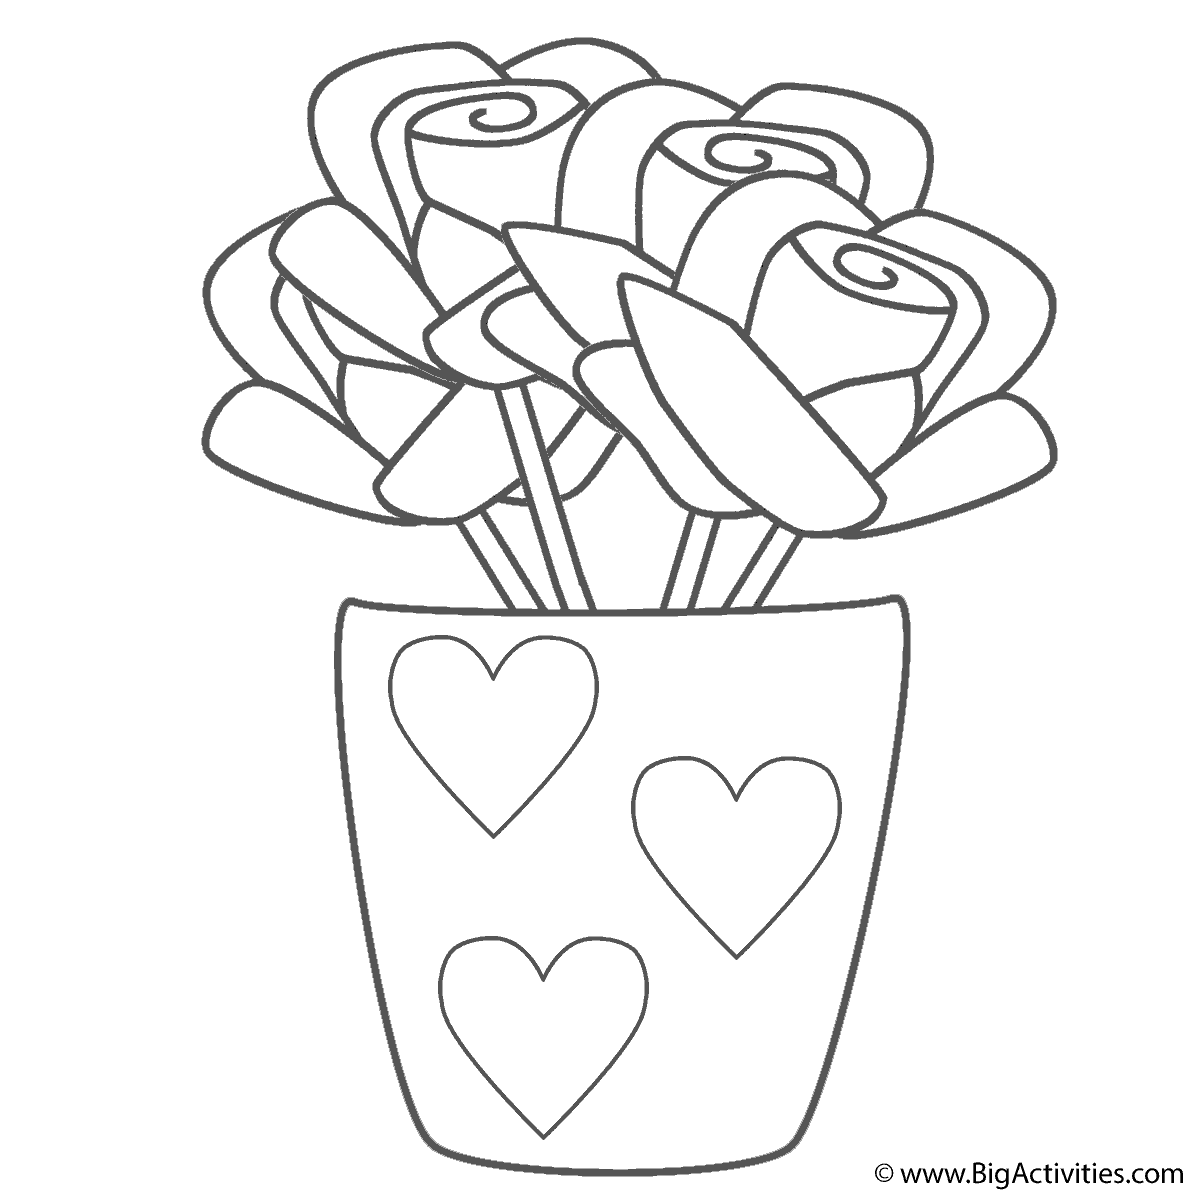 Roses In Vase With Hearts Coloring Page Mother S Day Mothers Day Coloring Pages Free Heart Coloring Pages Mothers Day Coloring Pages Flower Coloring Pages